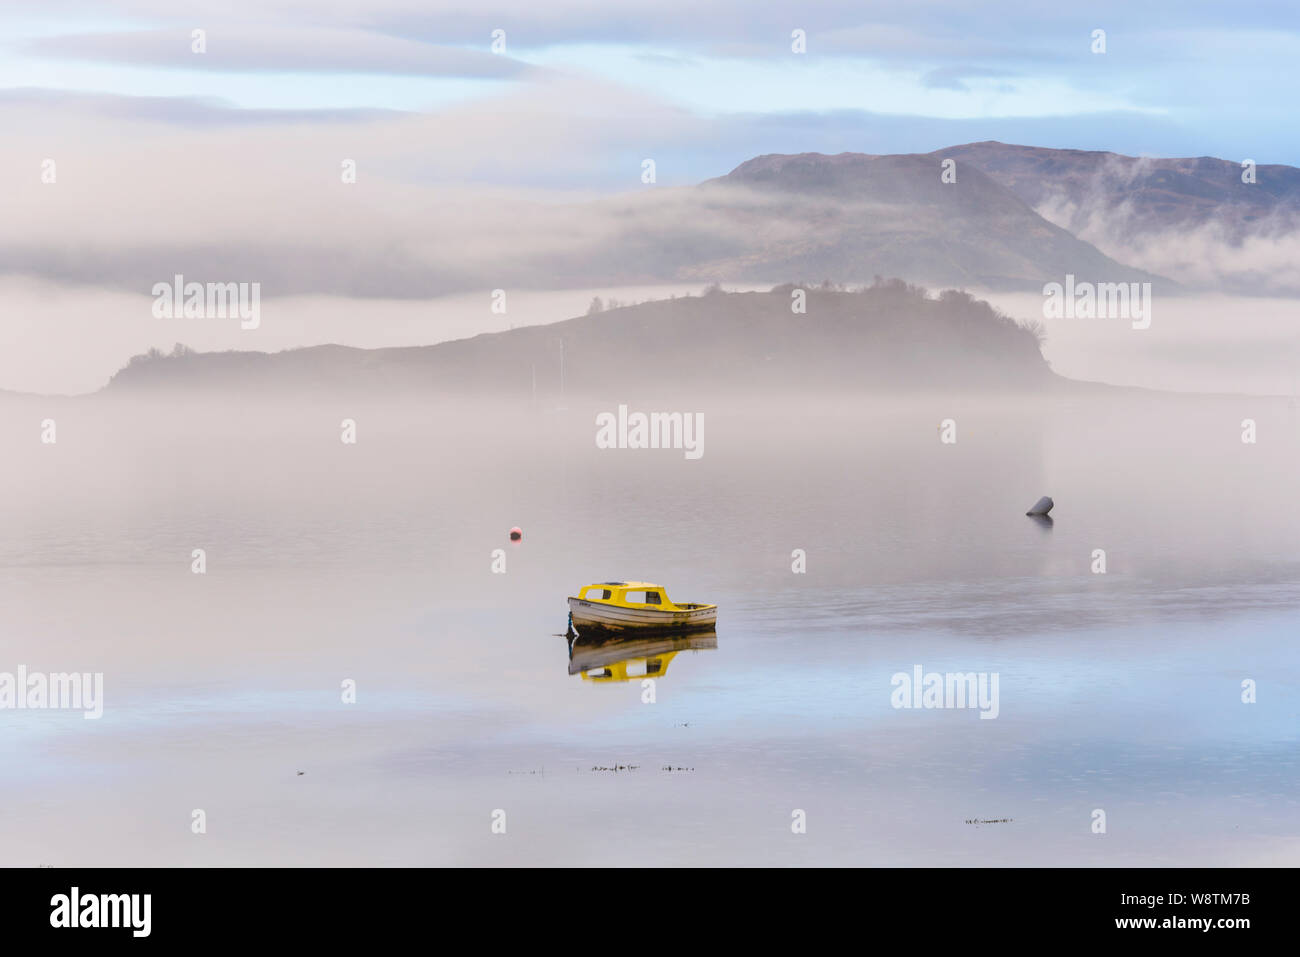 Small boat in mist and fog on Loch Carron, Wester Ross, Highlands of Scotland Stock Photo